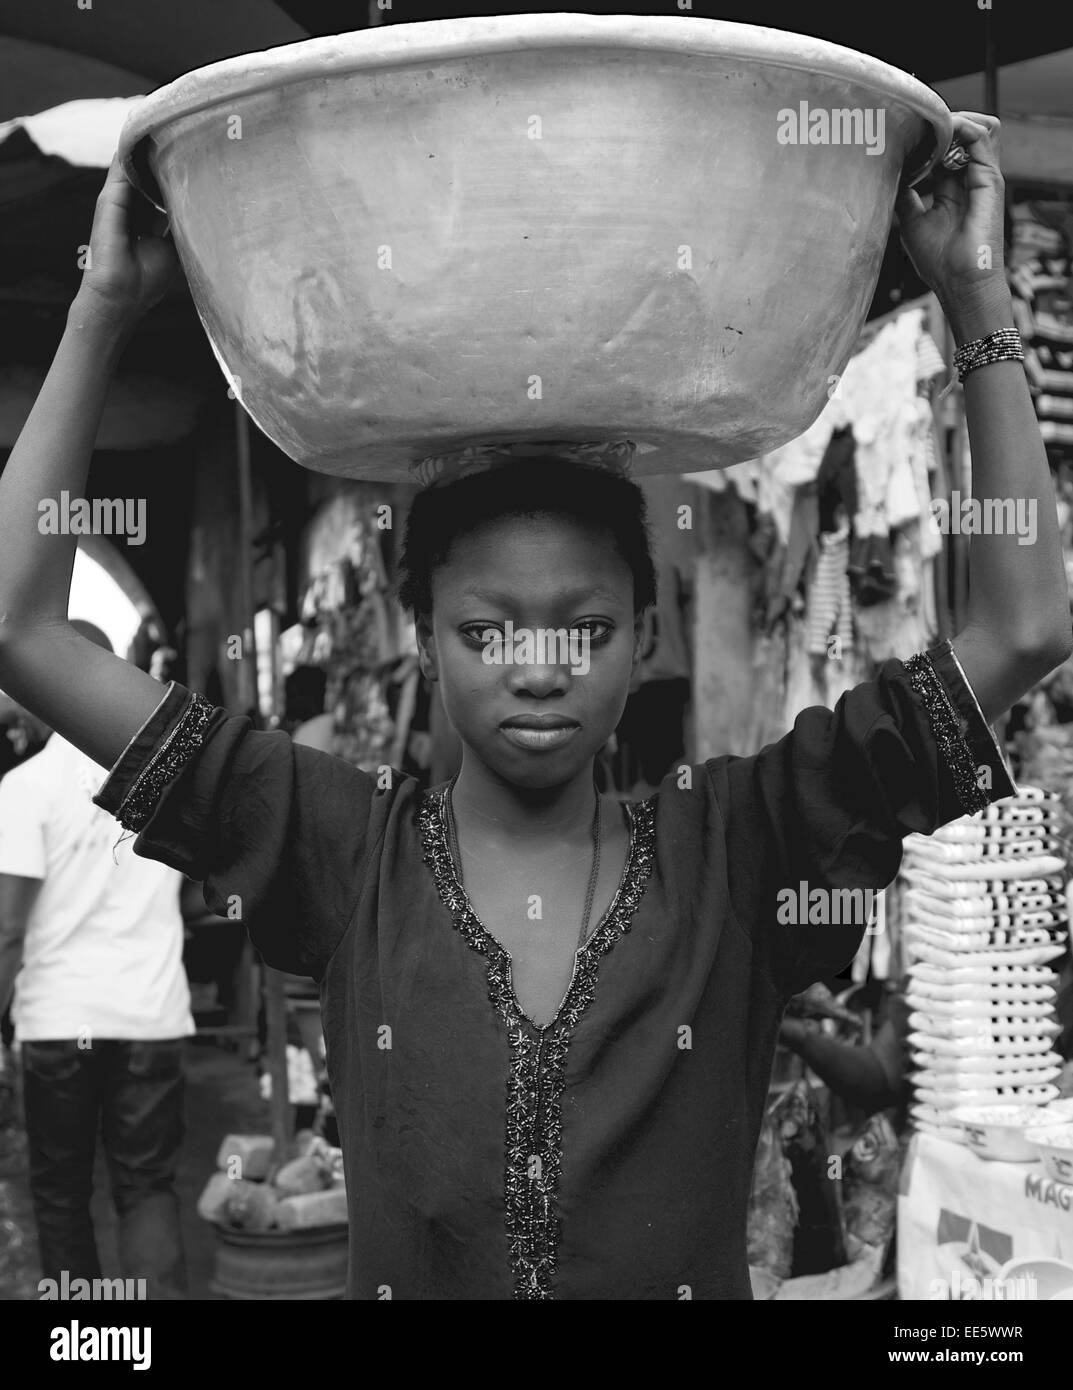 Girl carrying food in Ghana Market. These girls helps shoppers carry their food in markets and make a small living - Stock Image